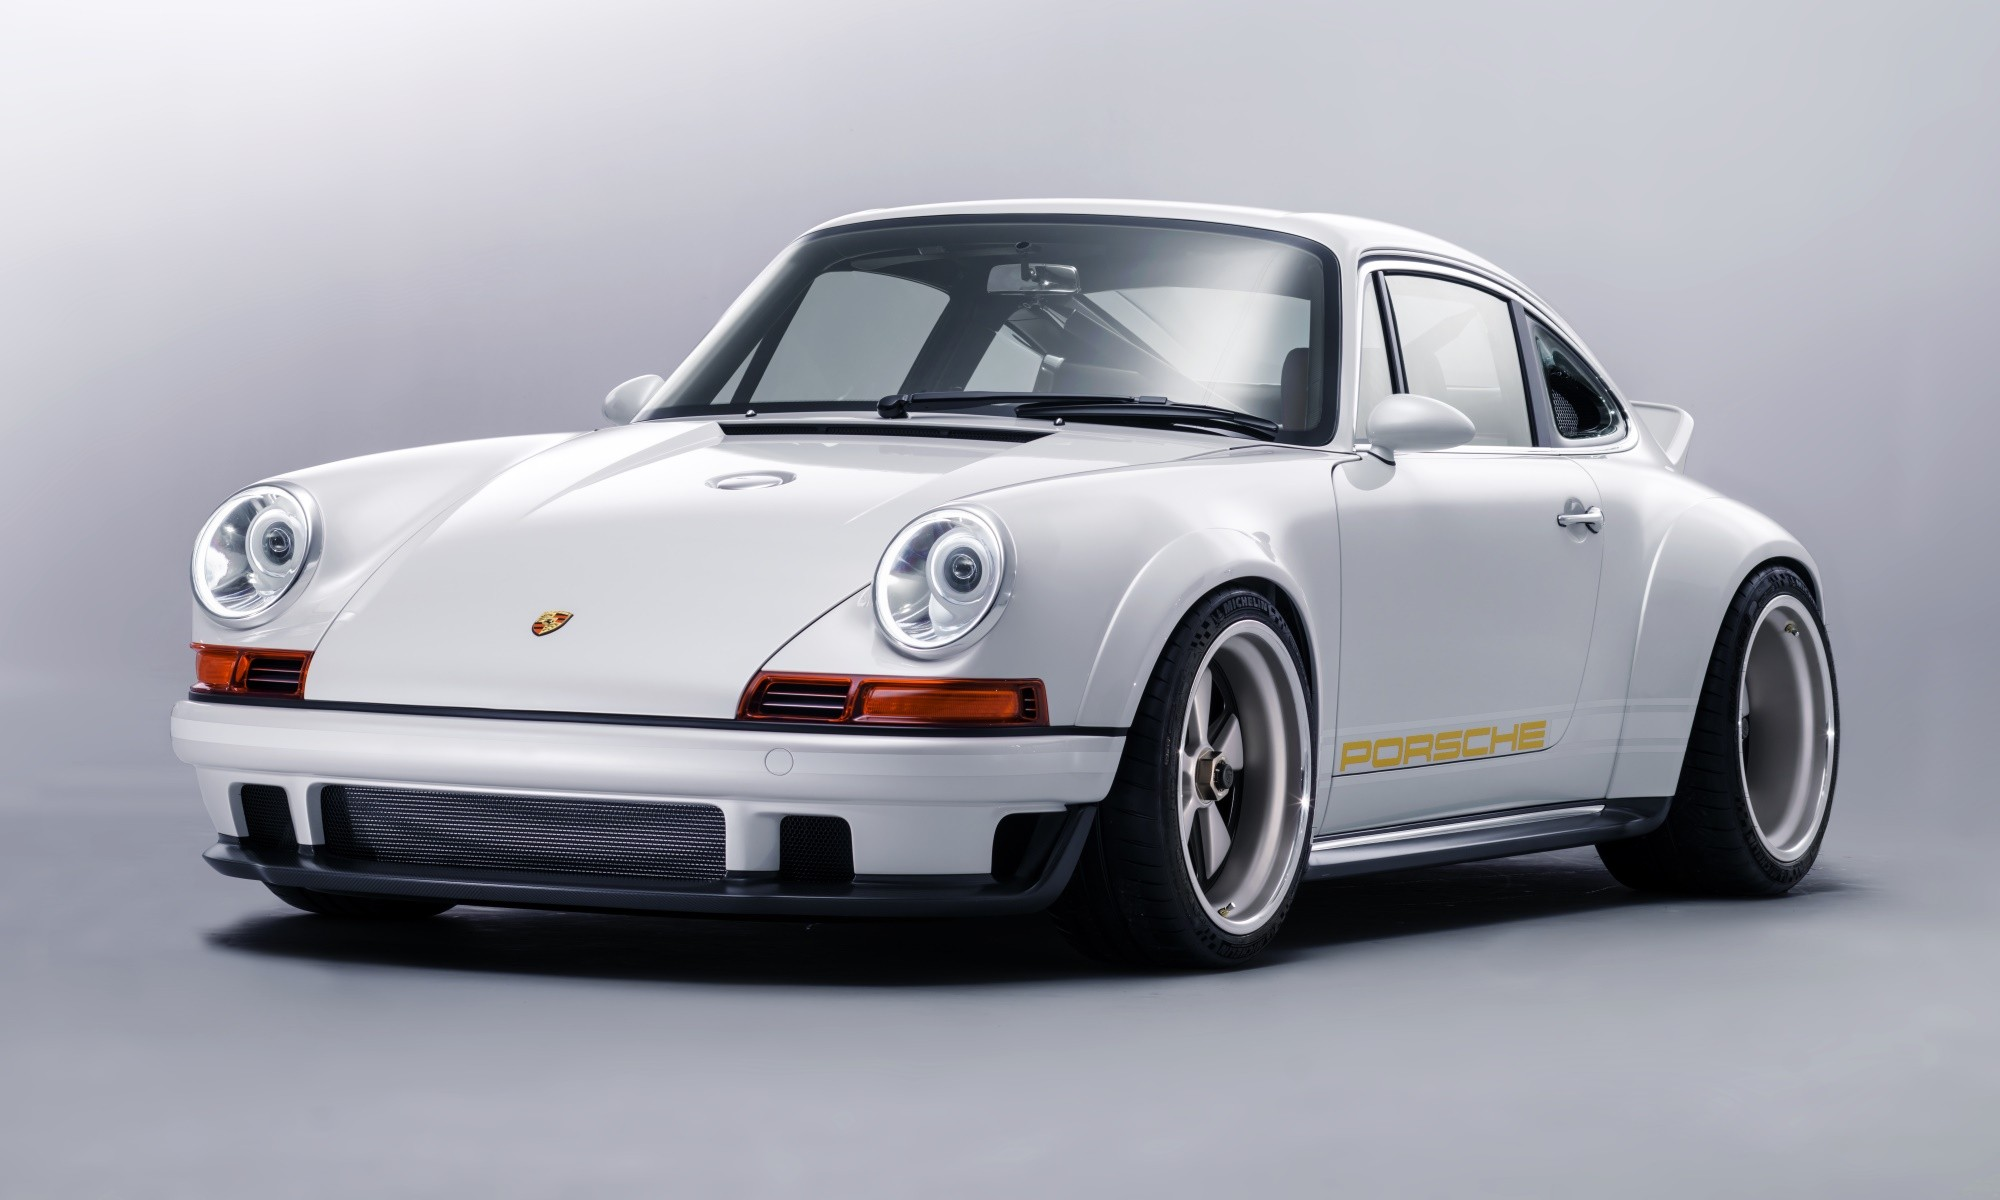 Singer Porsche Dynamics and Lightweight Study